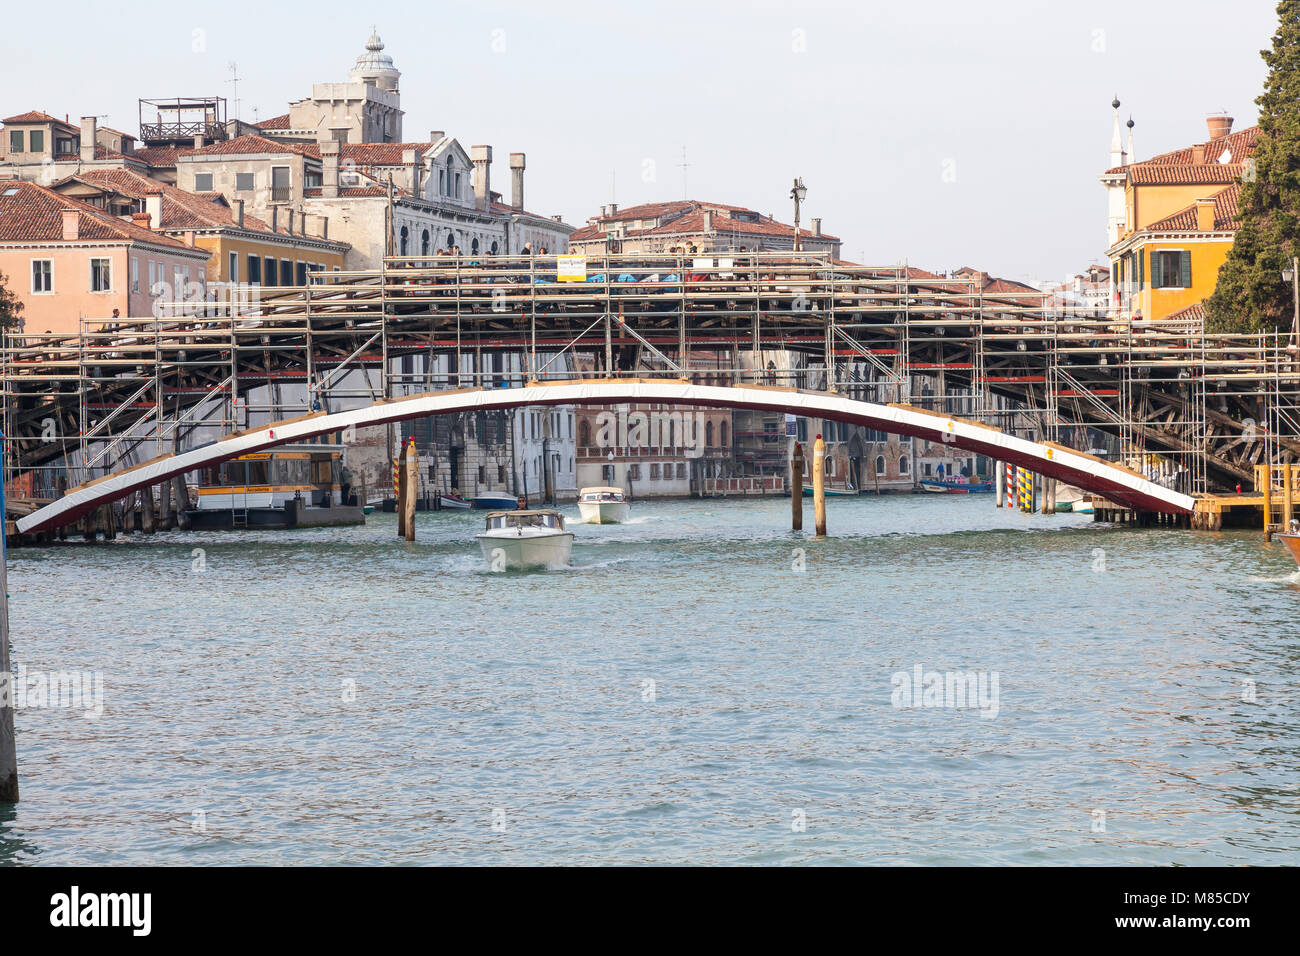 Accademia Bridge covered in scaffolding for renovations by Luxottica Eyewear, Grand Canal, Venice, Veneto,  Italy - Stock Image